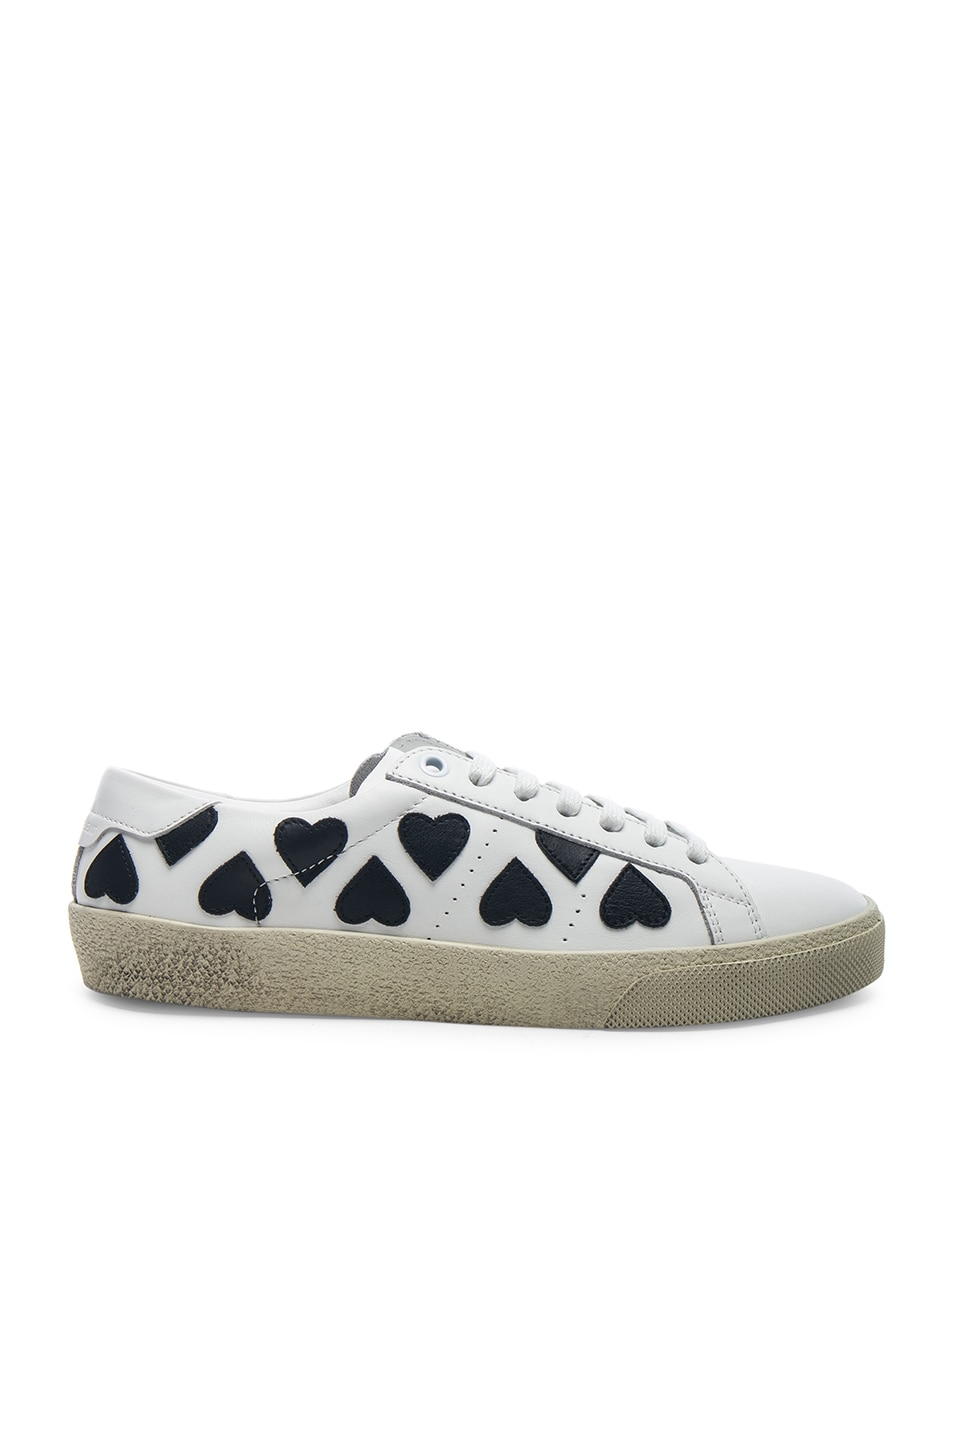 Saint Laurent Leather Court Classic Heart Embroidered Sneakers in . ux5BsN8